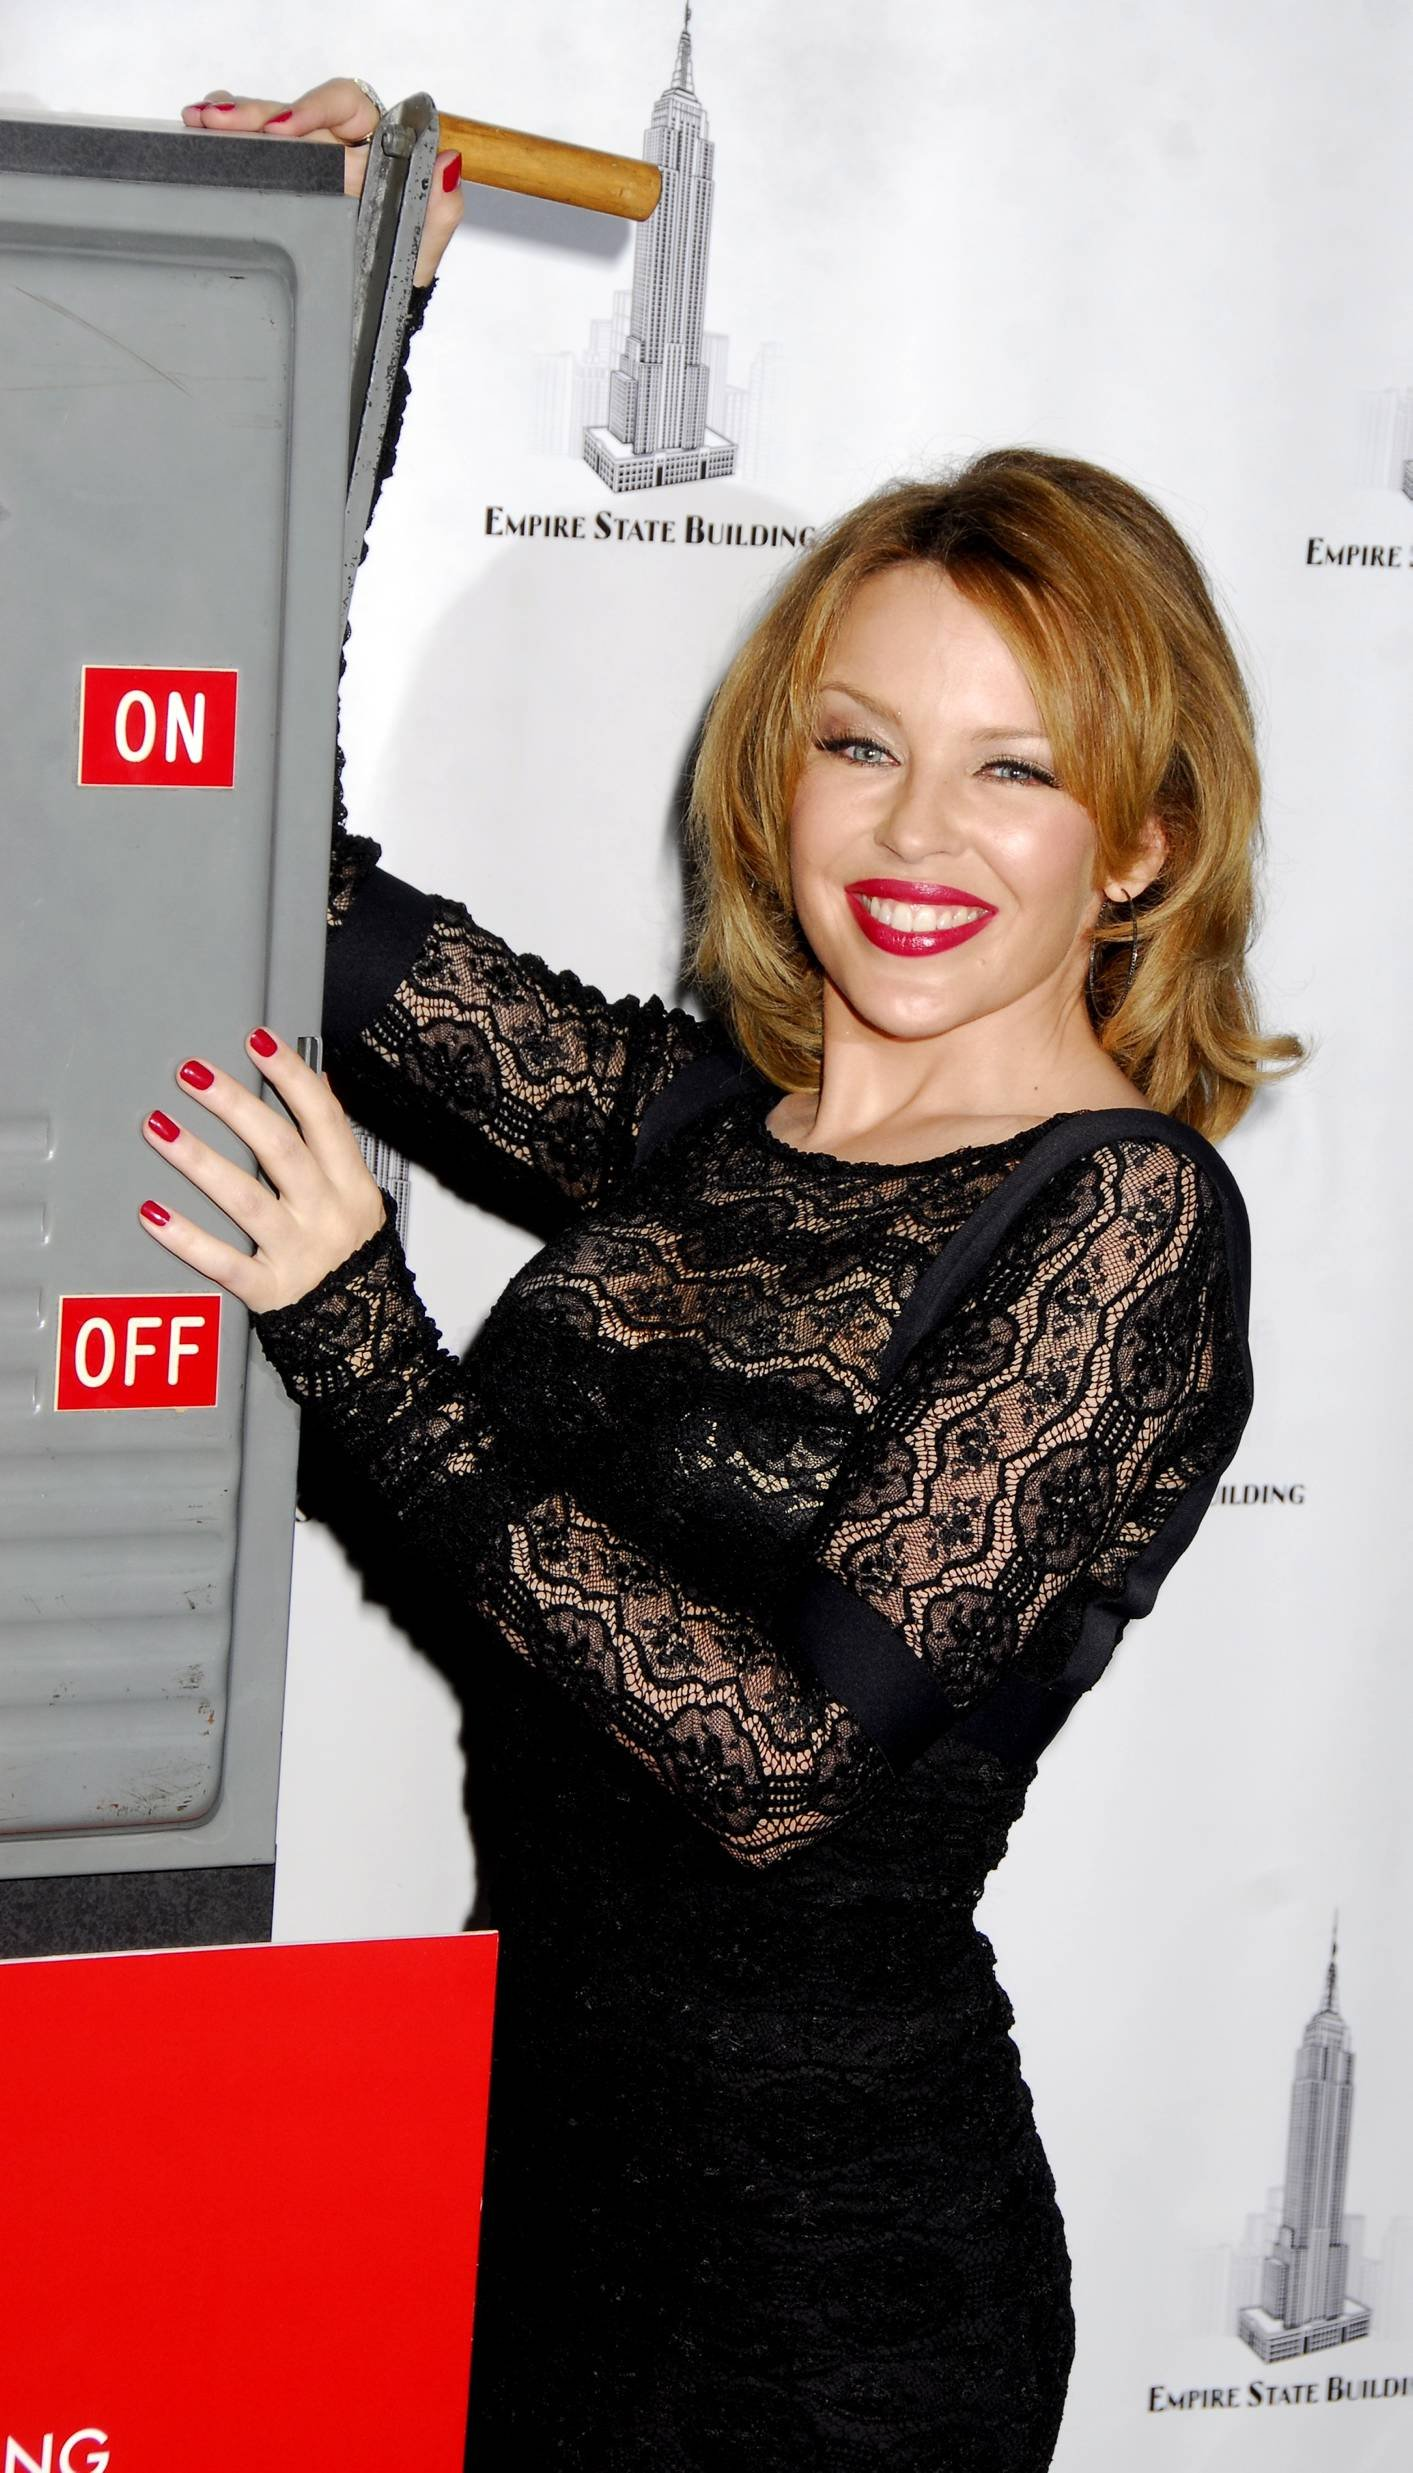 25332_Celebutopia-Kylie_Minogue_lights_The_Empire_State_Building-09_122_30lo.jpg